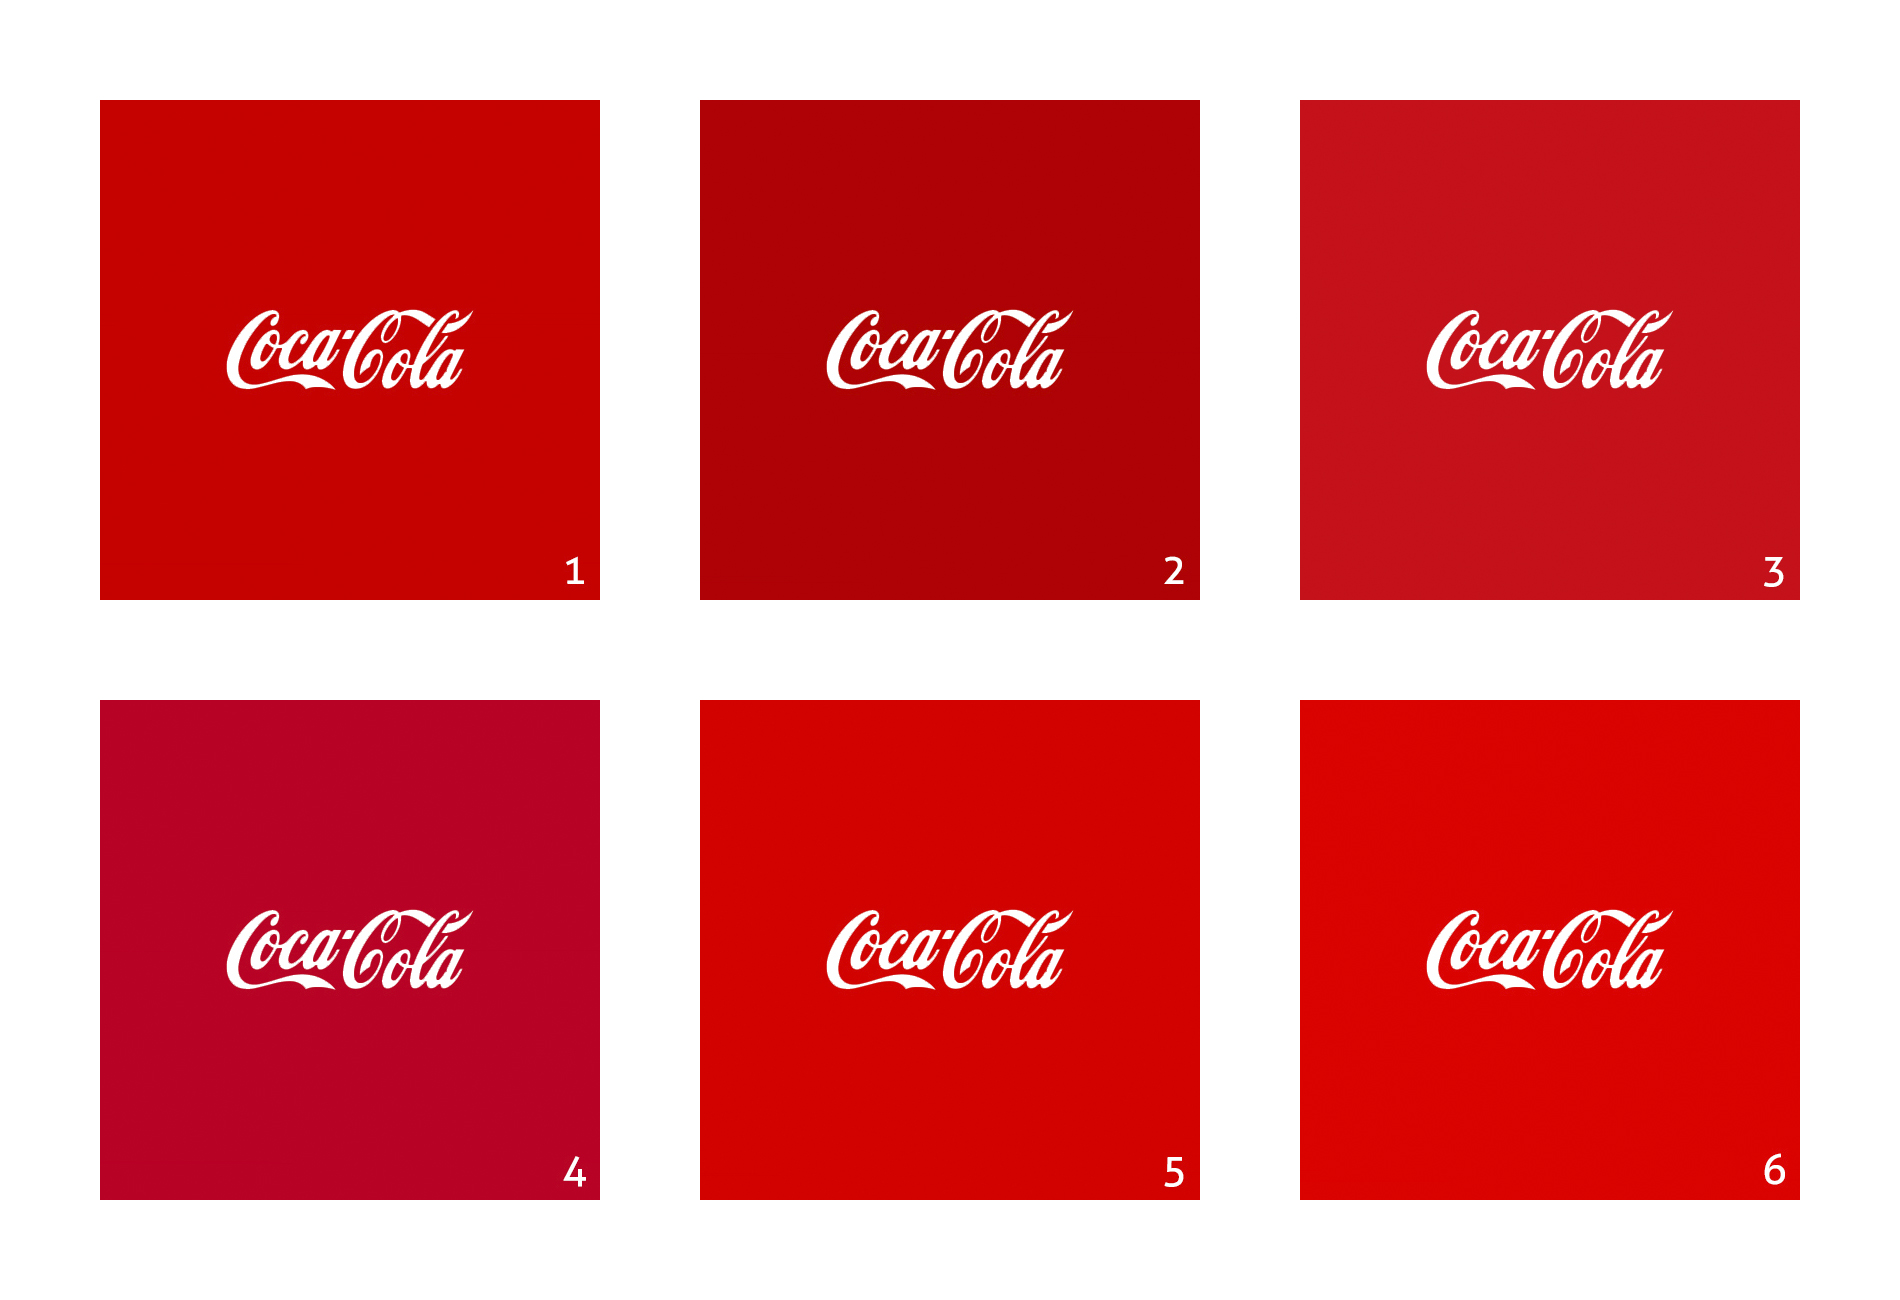 Different versions of Coca-Cola logo: 6 different versions of red